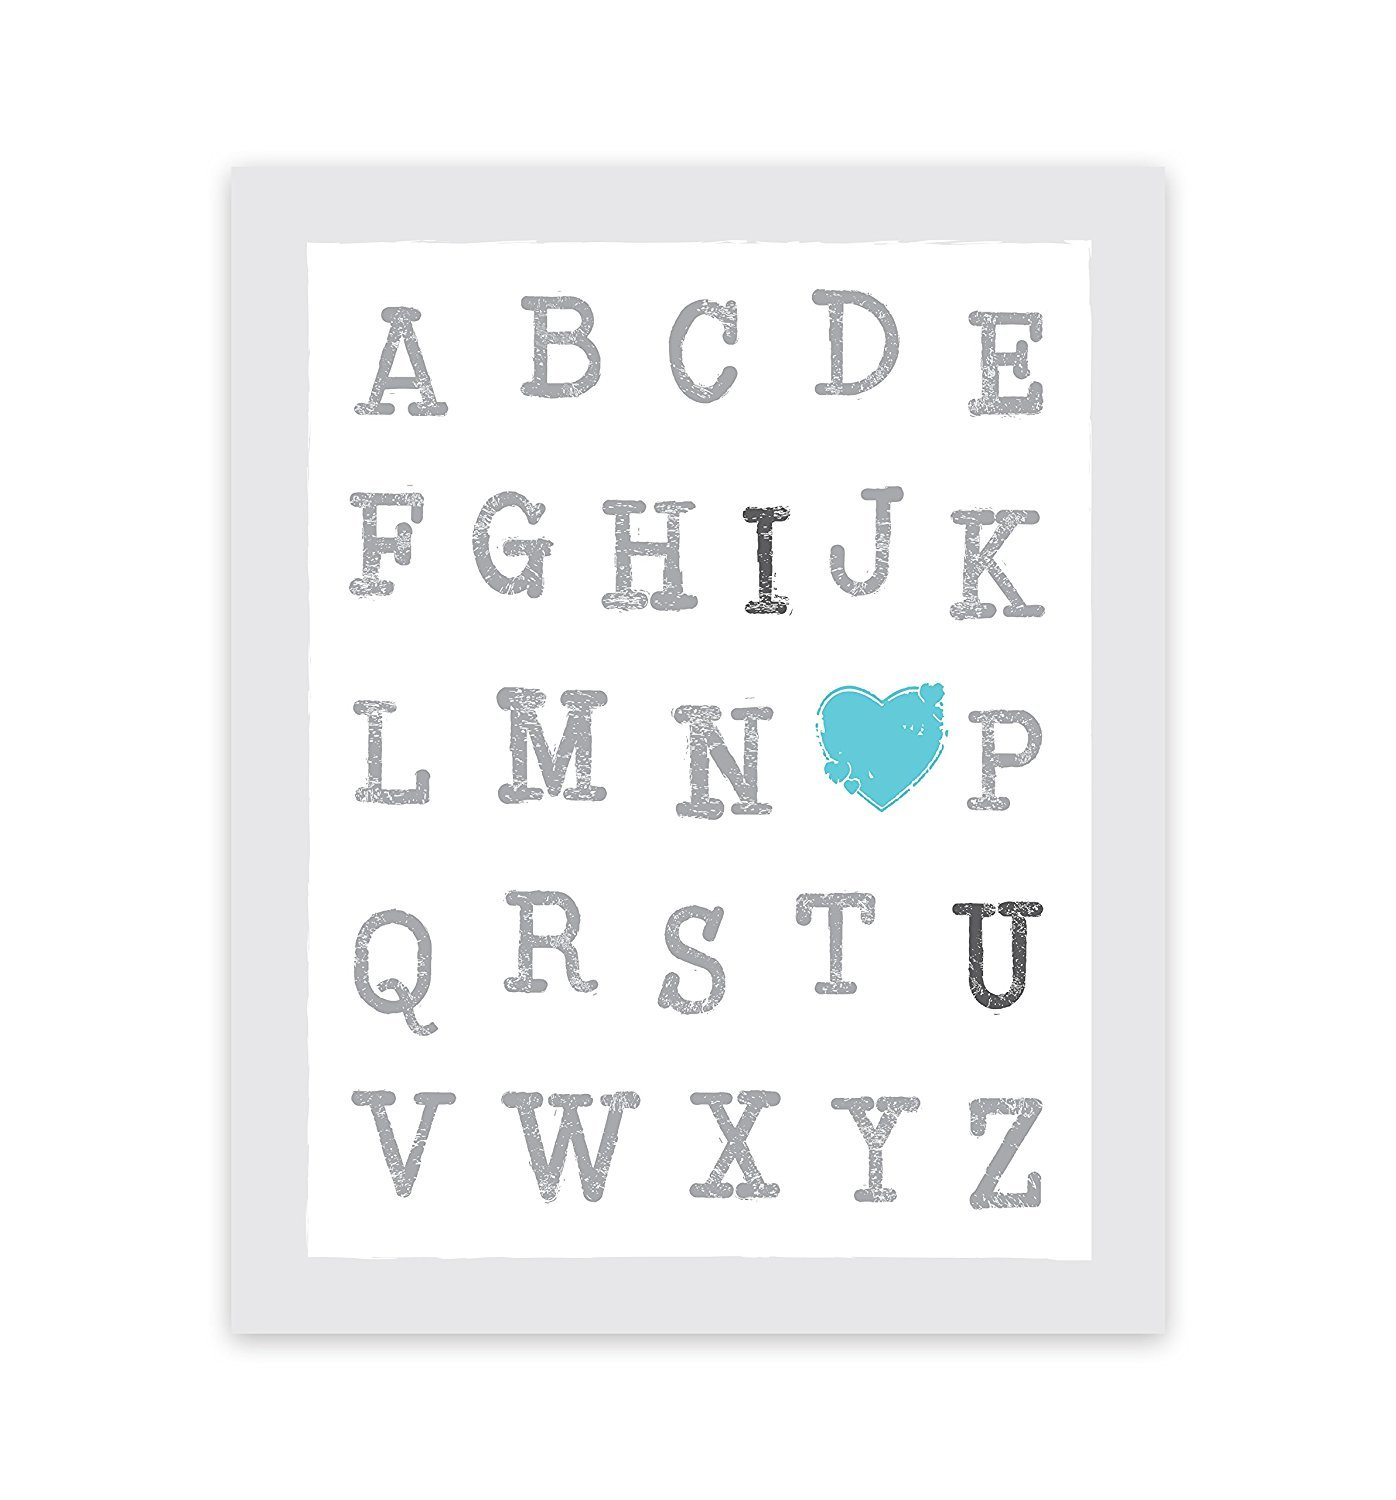 ABC's of Love Blue 08x10 Inch Print, I Love You Wall Quotes Nursery Quotes Alphabet Letters Words Art Alphabet Wall Art Decor Baby Boy Nursery Decor Wall Art ABC I Heart You Designs by Children Inspire Design